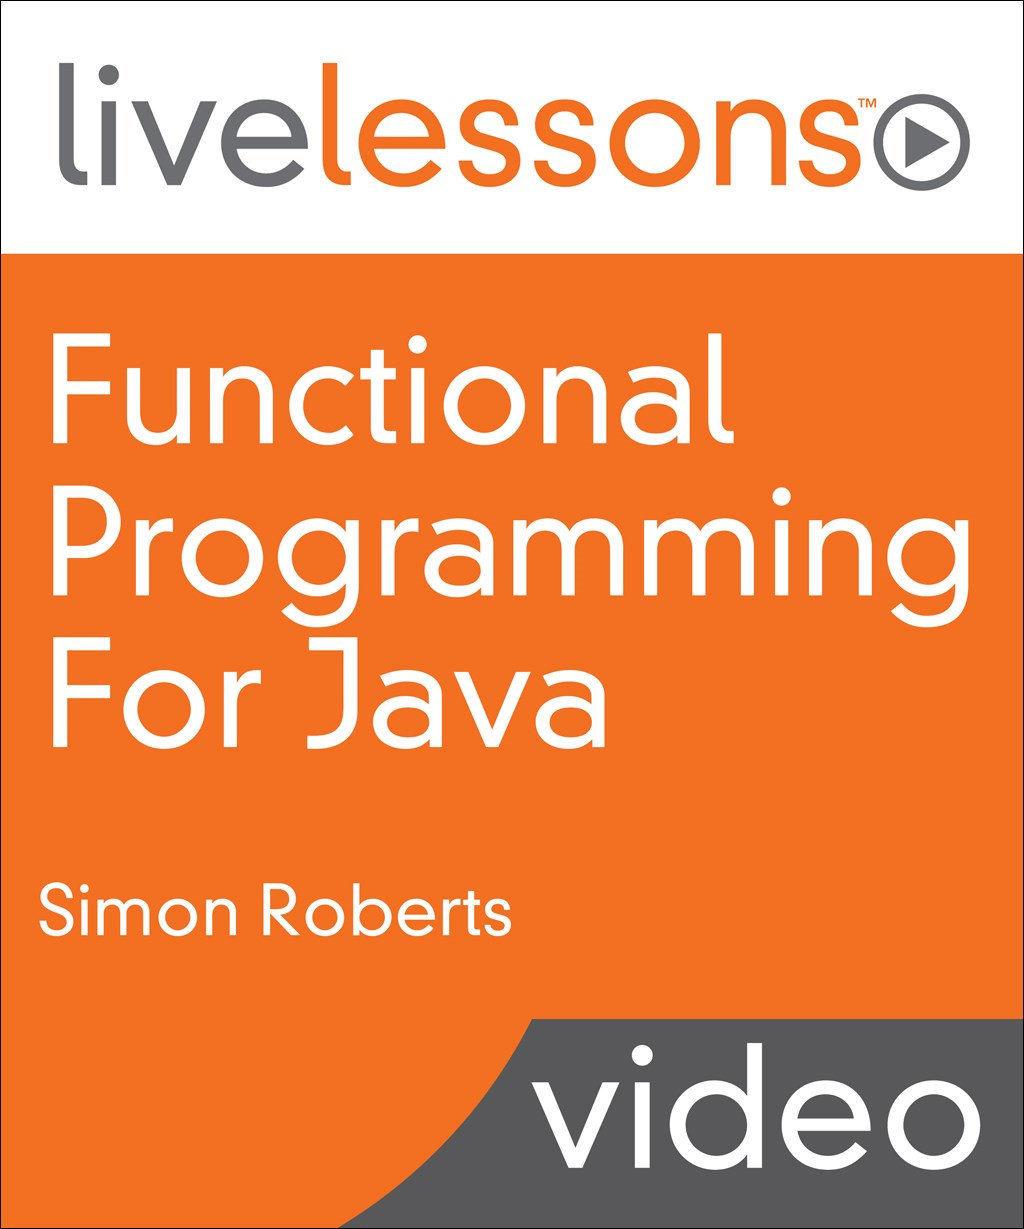 Functional Programming for Java LiveLessons